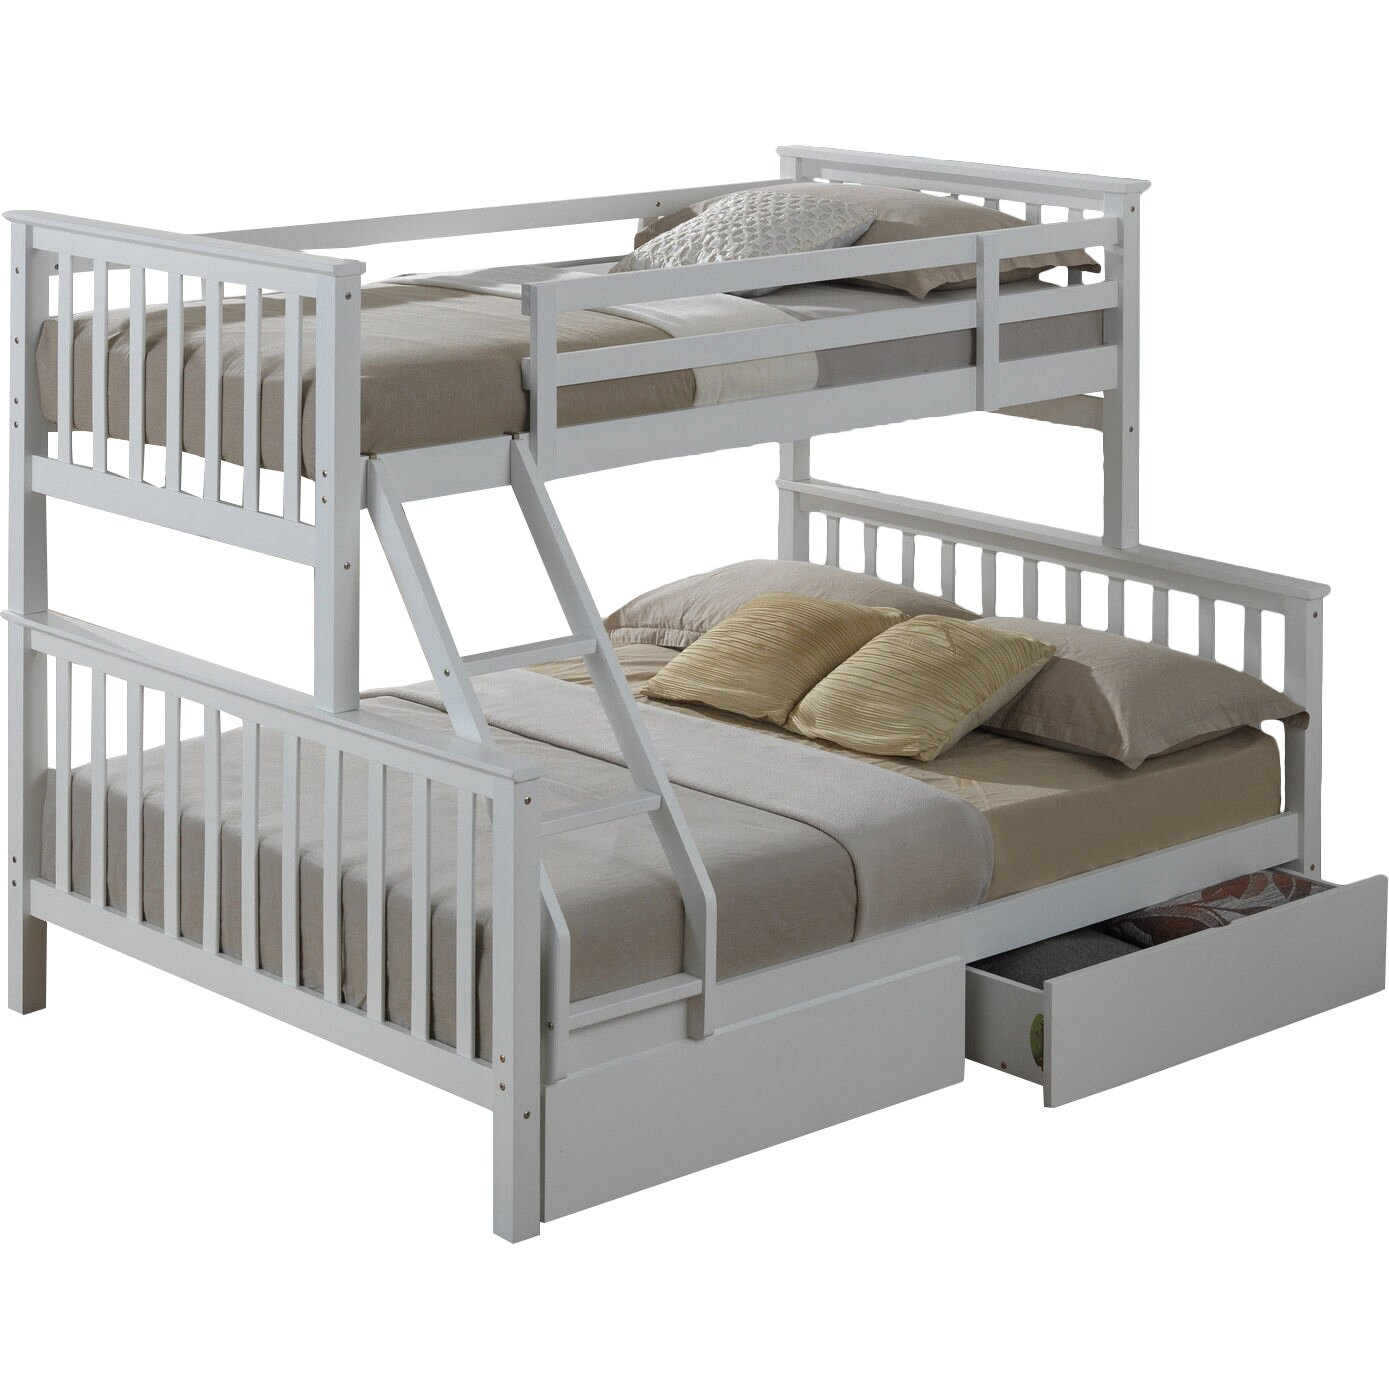 Home loft concept mara triple sleeper bunk bed with for Concept beds